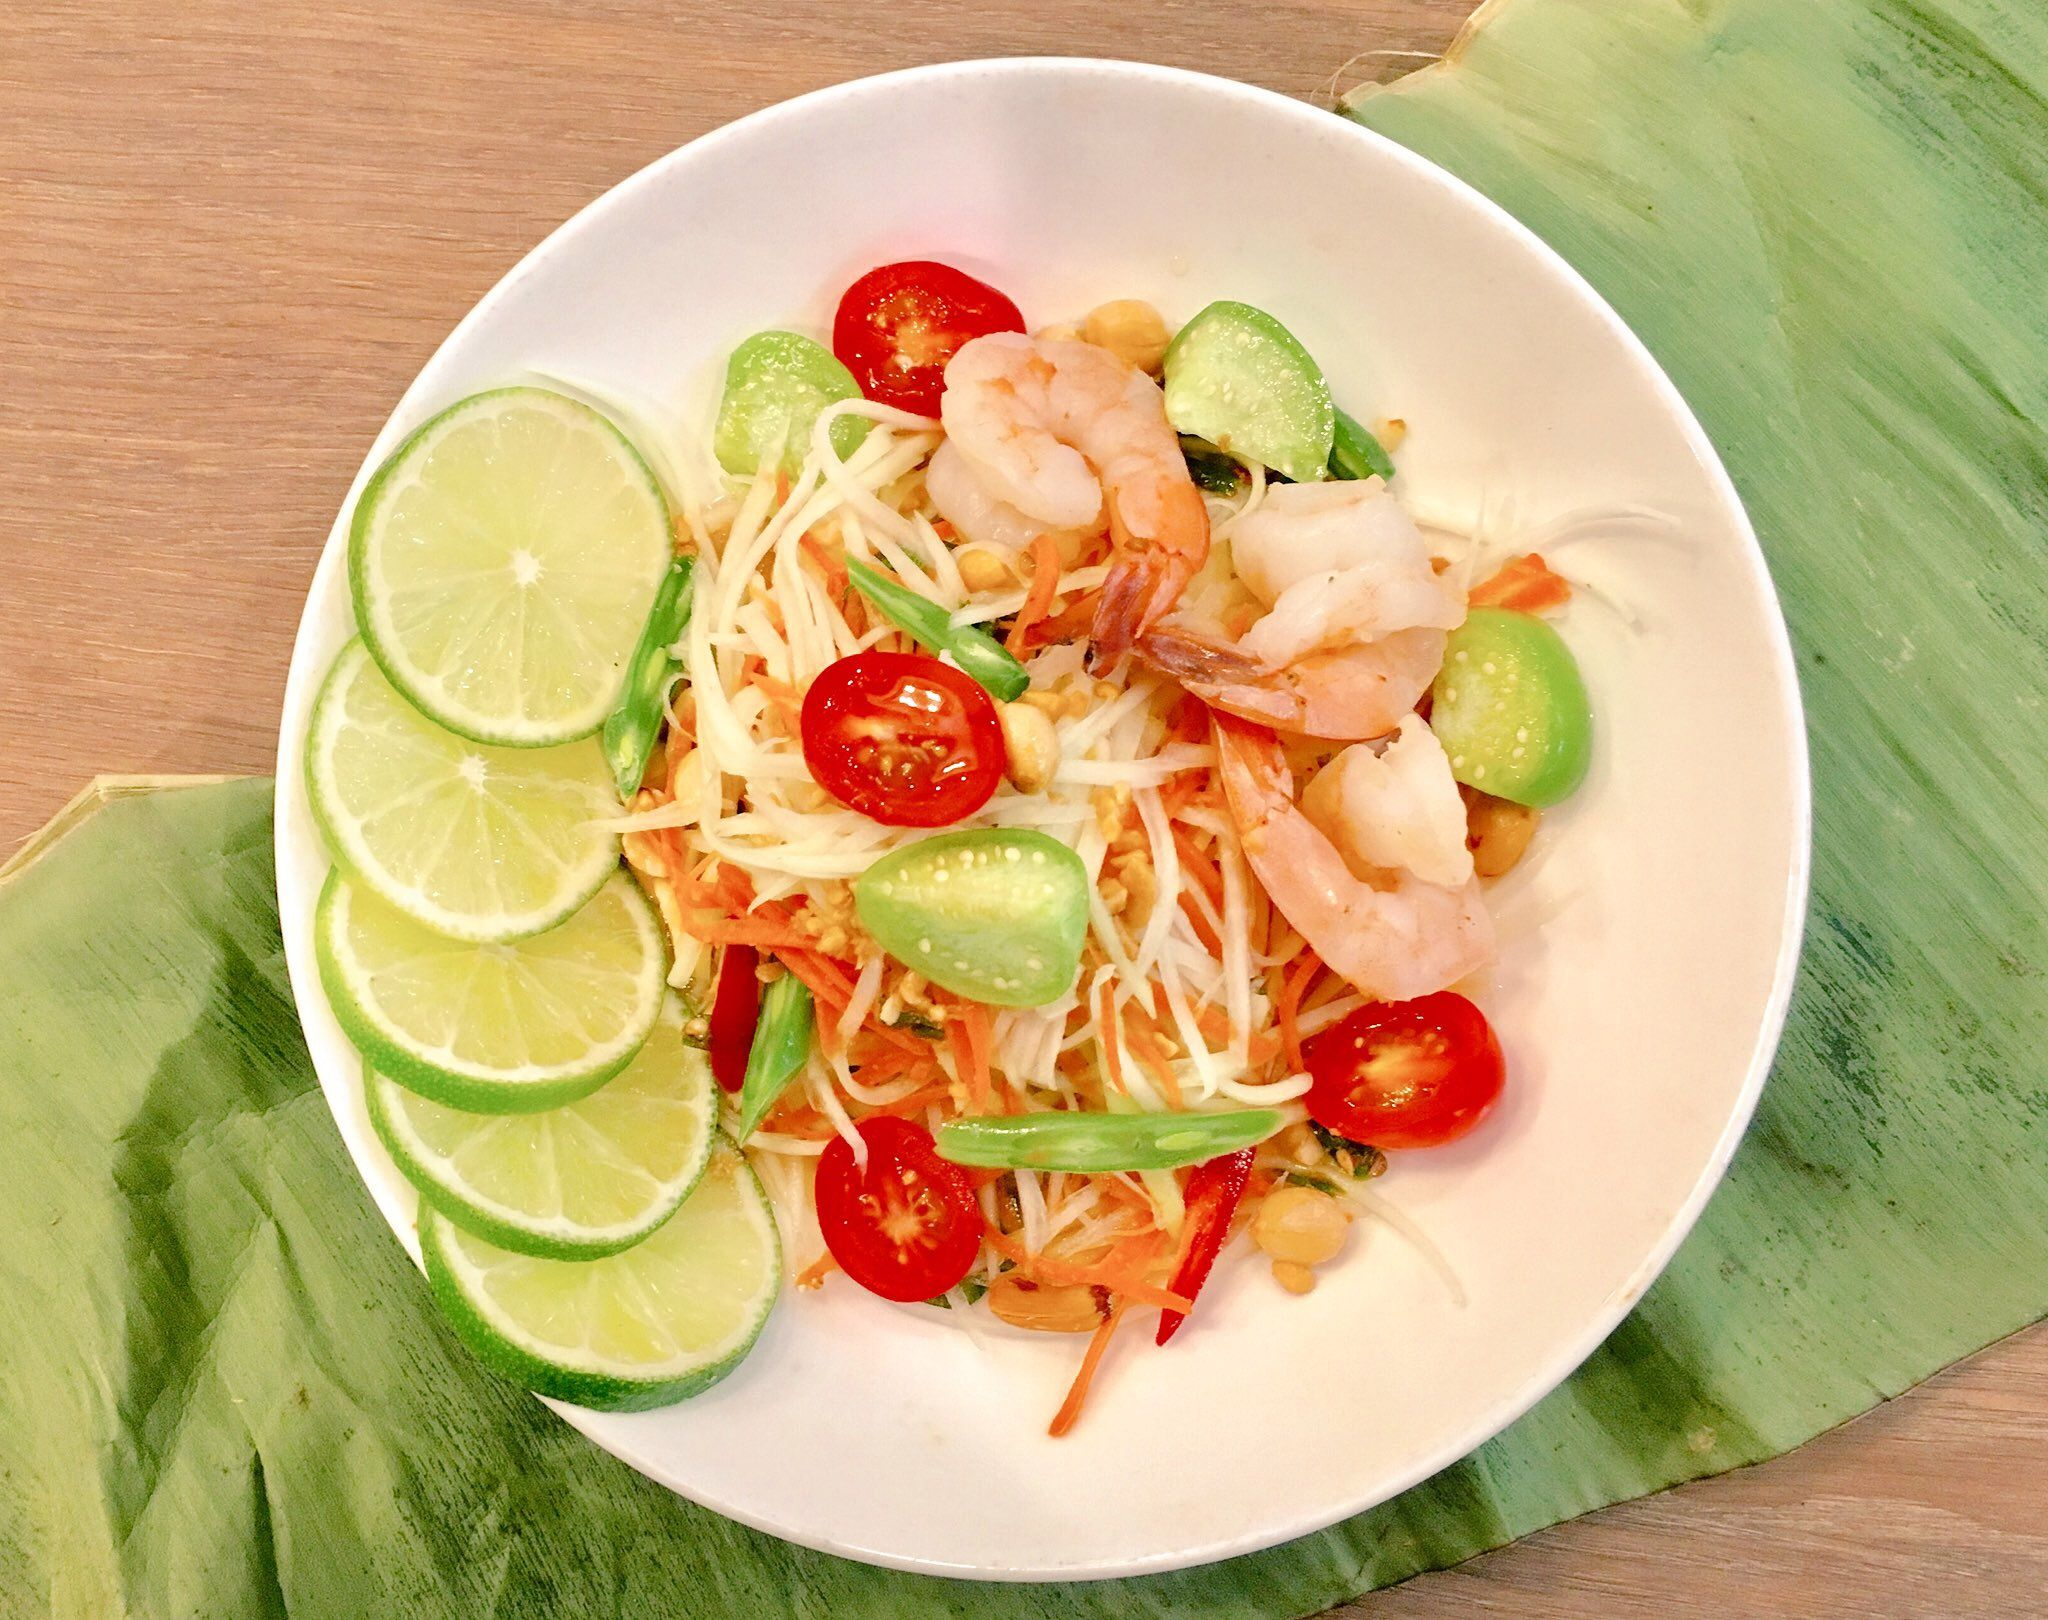 Let's get in shape for the summer. Try Som Tum or Thai papaya salad to help you lose weight quickly!